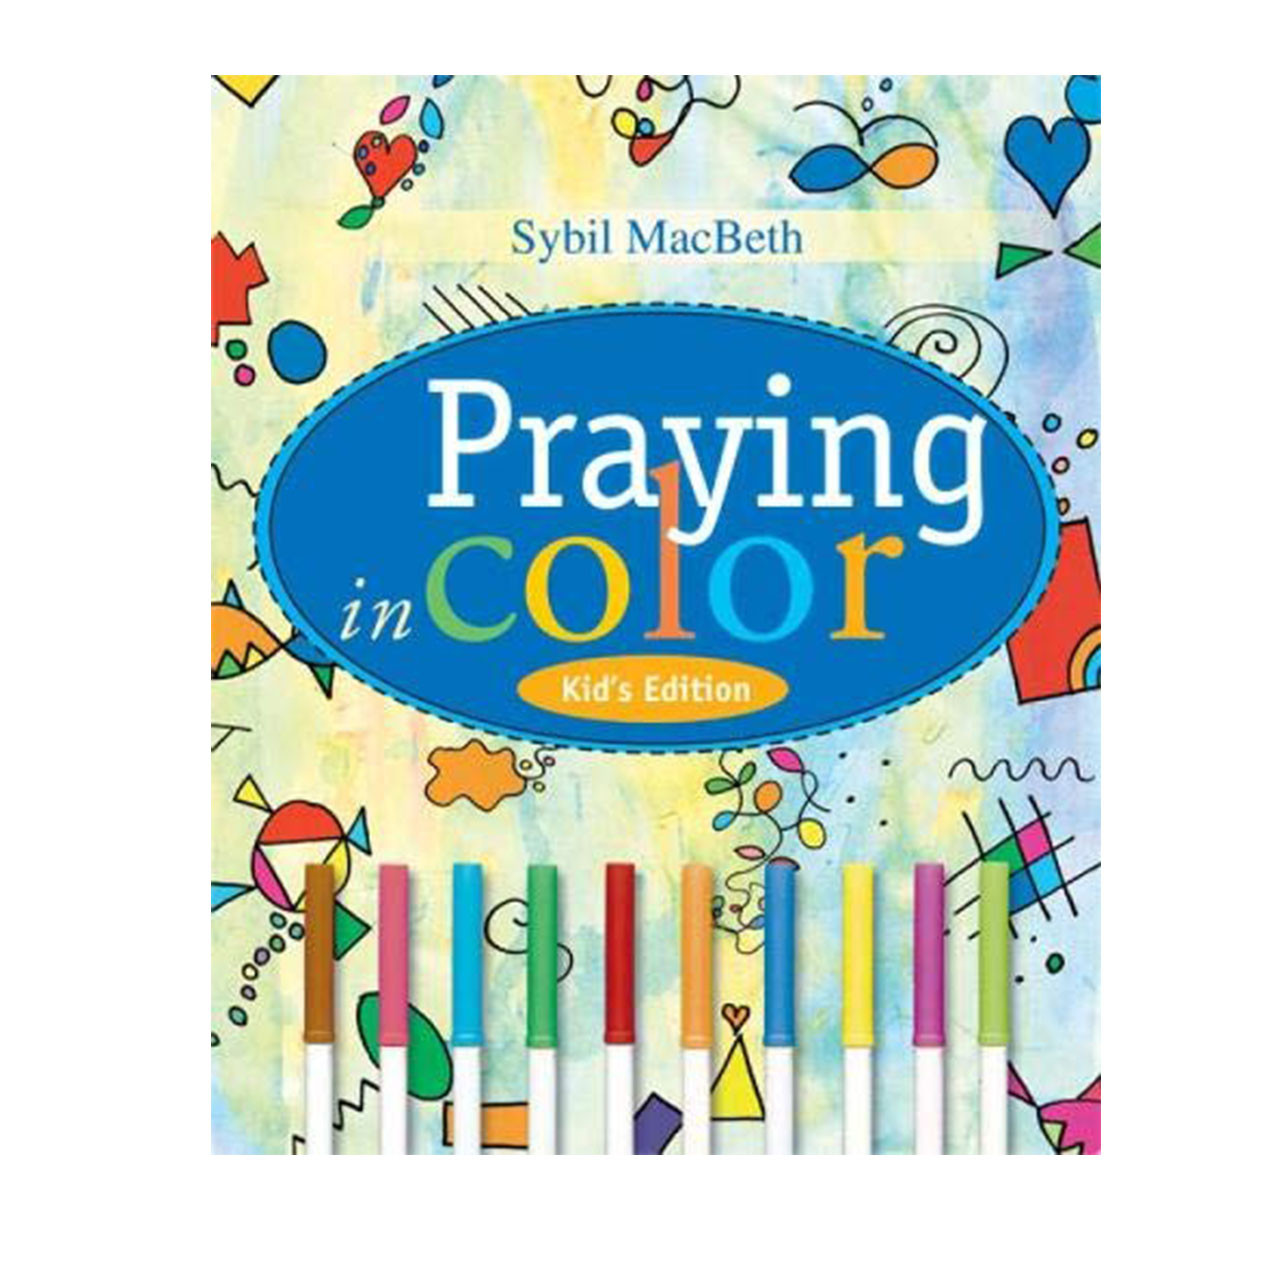 Cover image of Praying in Color Kid's Edtion Book